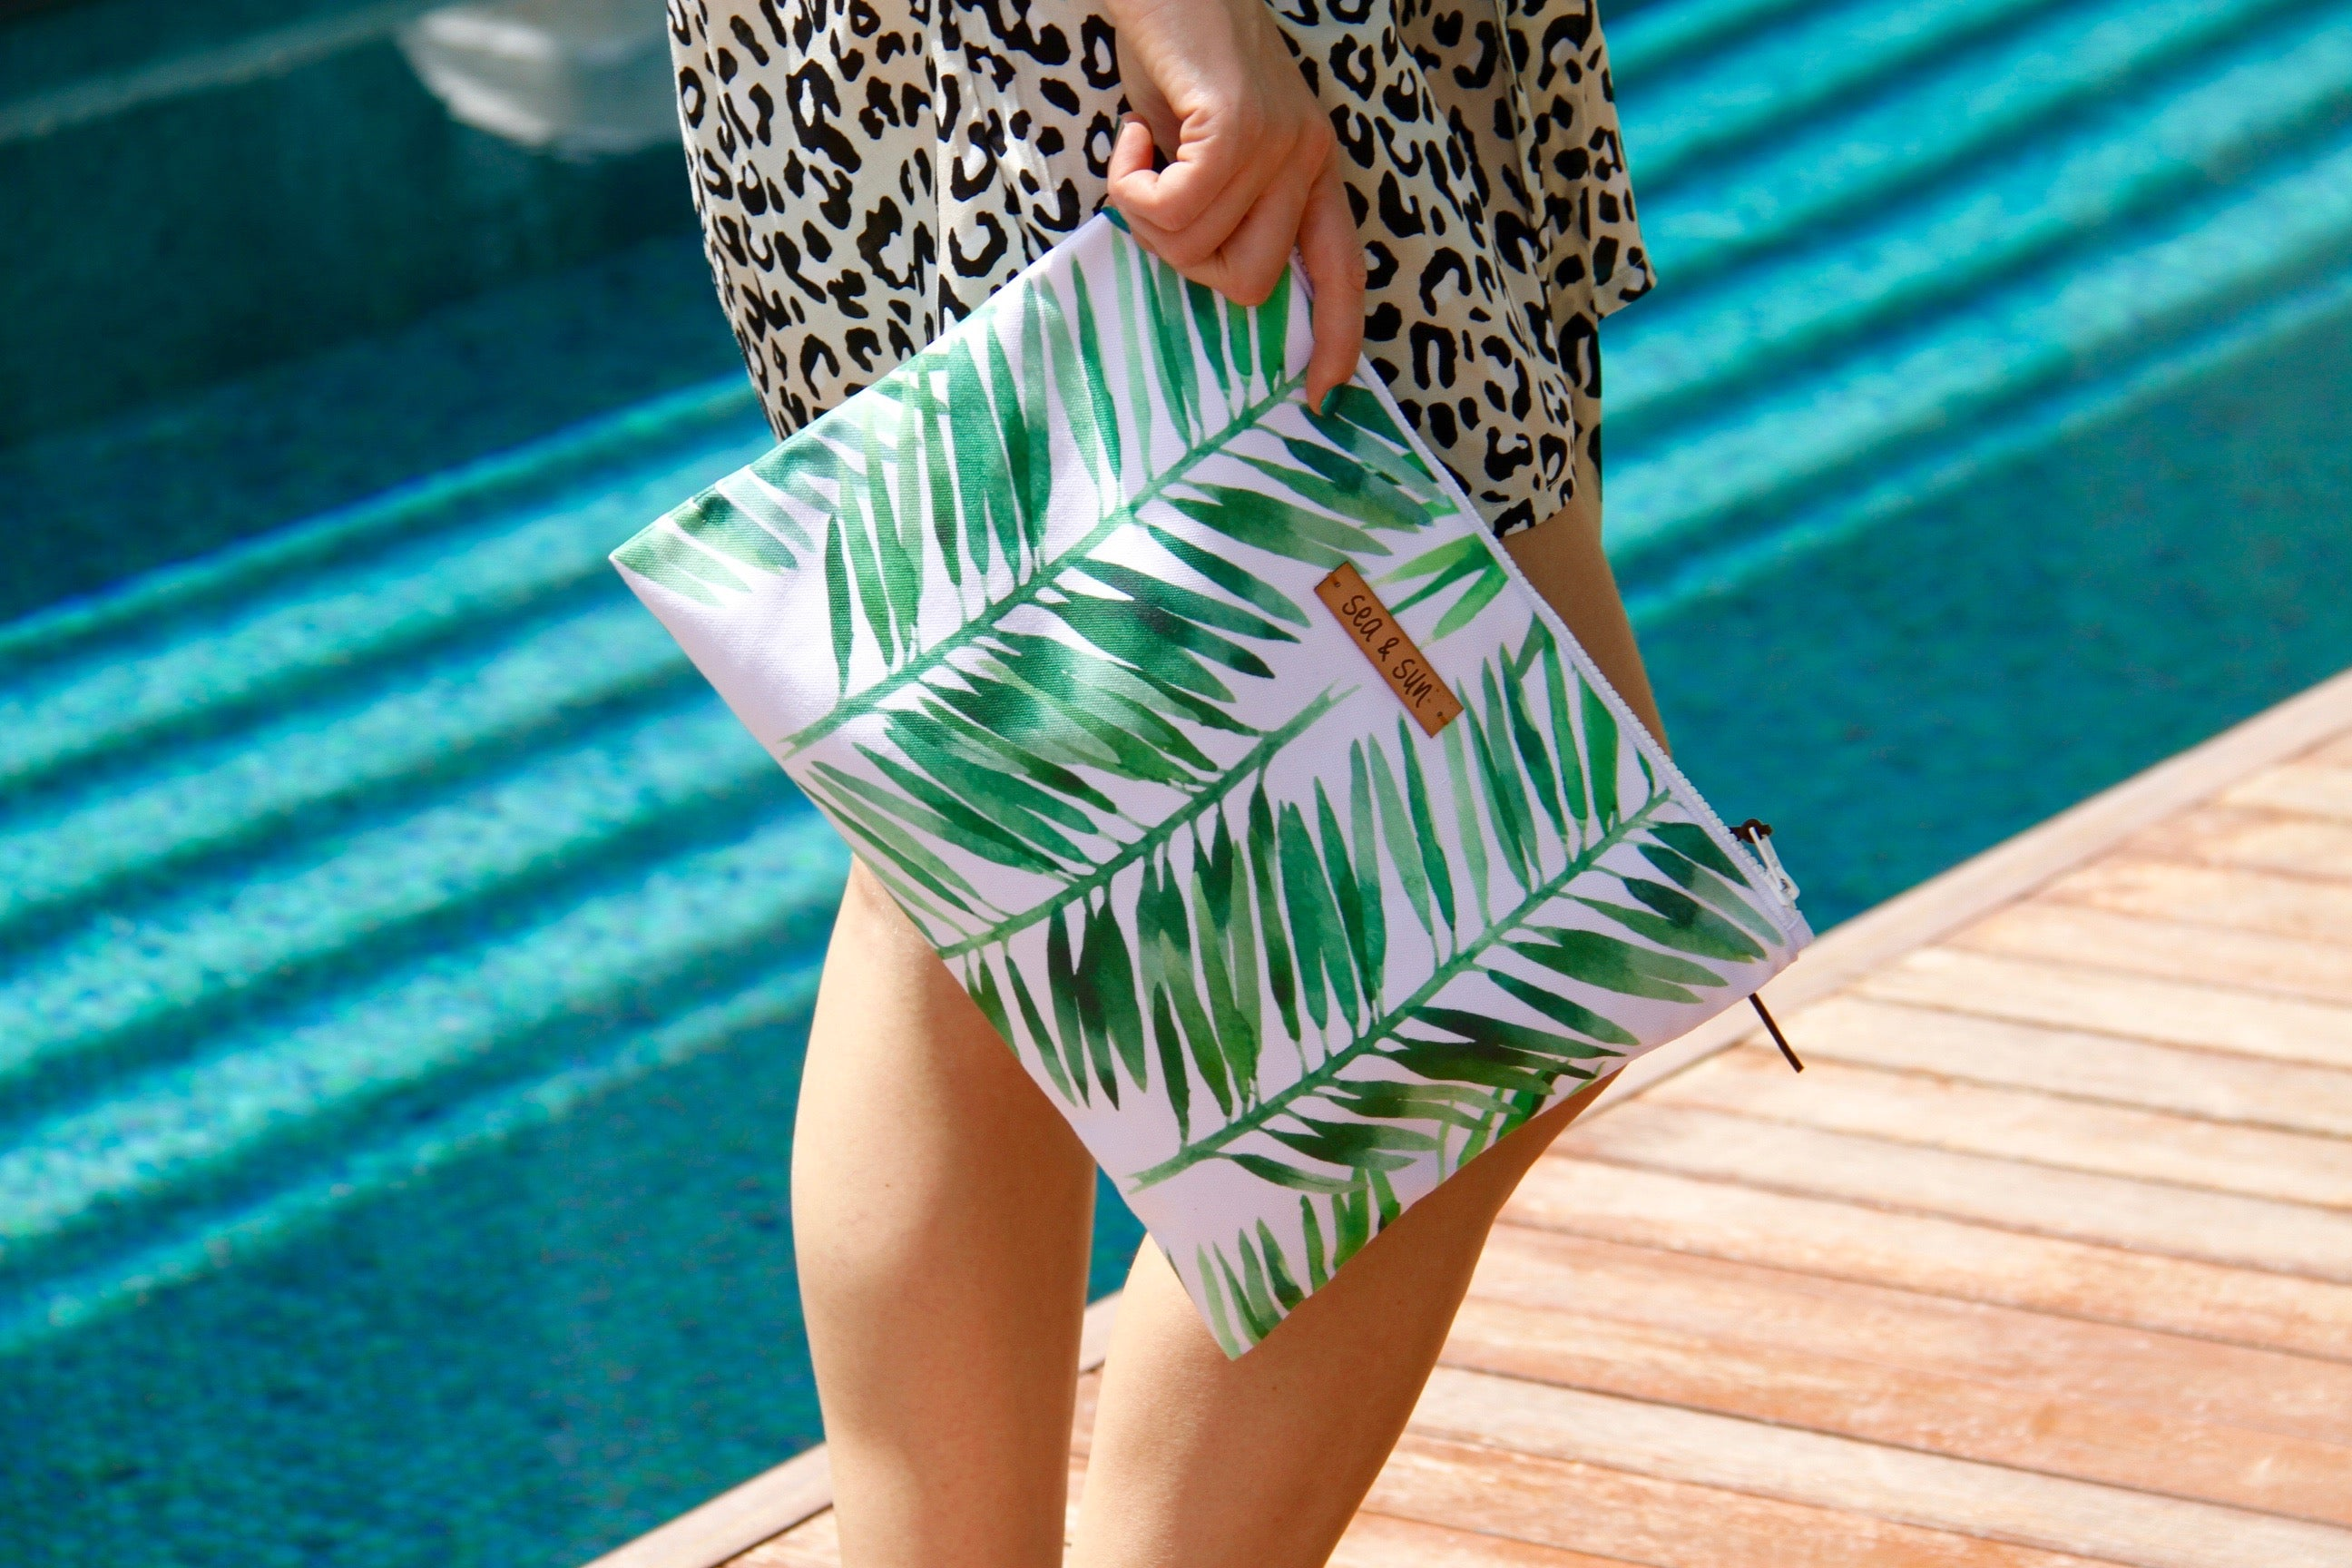 Jungle Paradise Waterproof lined Bag for the Beach, Pool, Travel or Makeup - Kardia